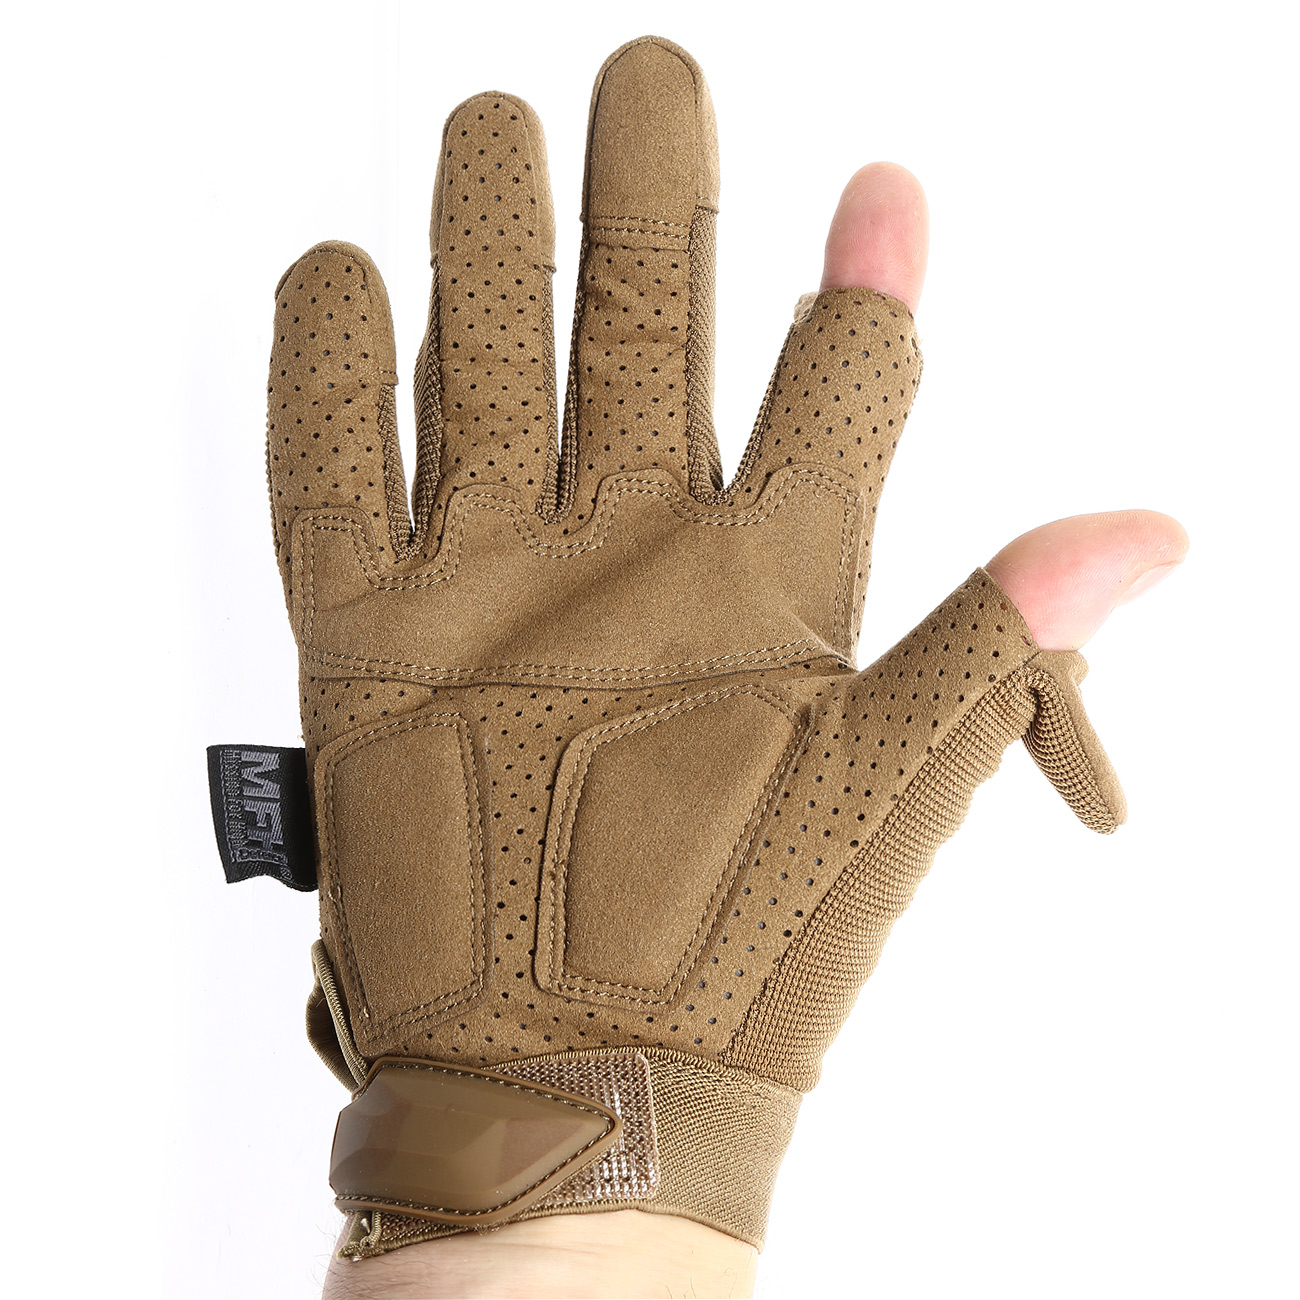 MFH Tactical Handschuhe Action coyote tan 3